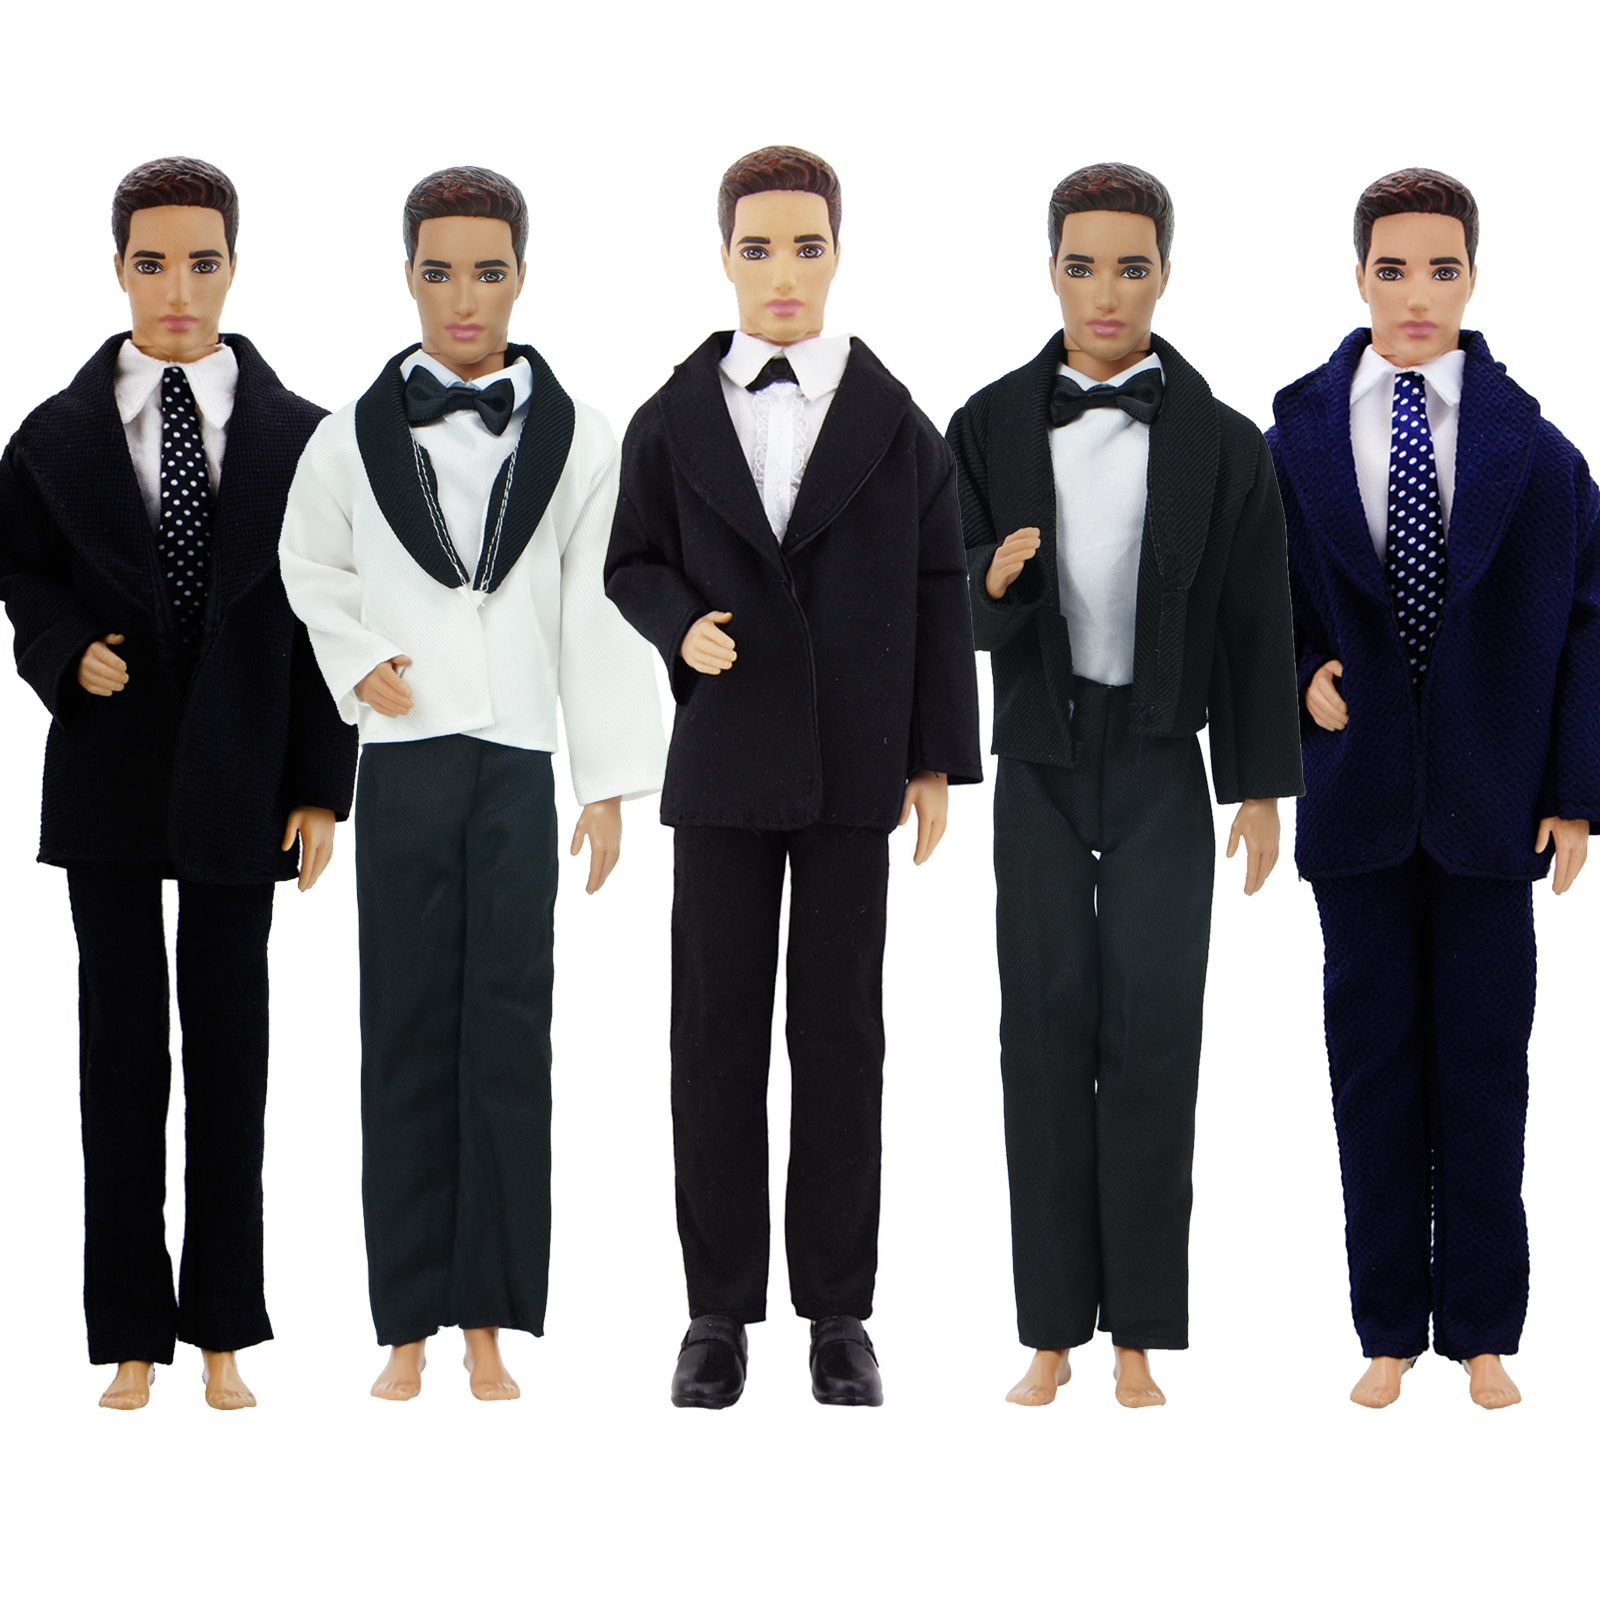 Handmade Doll Accessories Men Outfit Shirts + Coat + Trousers Tie Bow Formal Suit Tuxedo